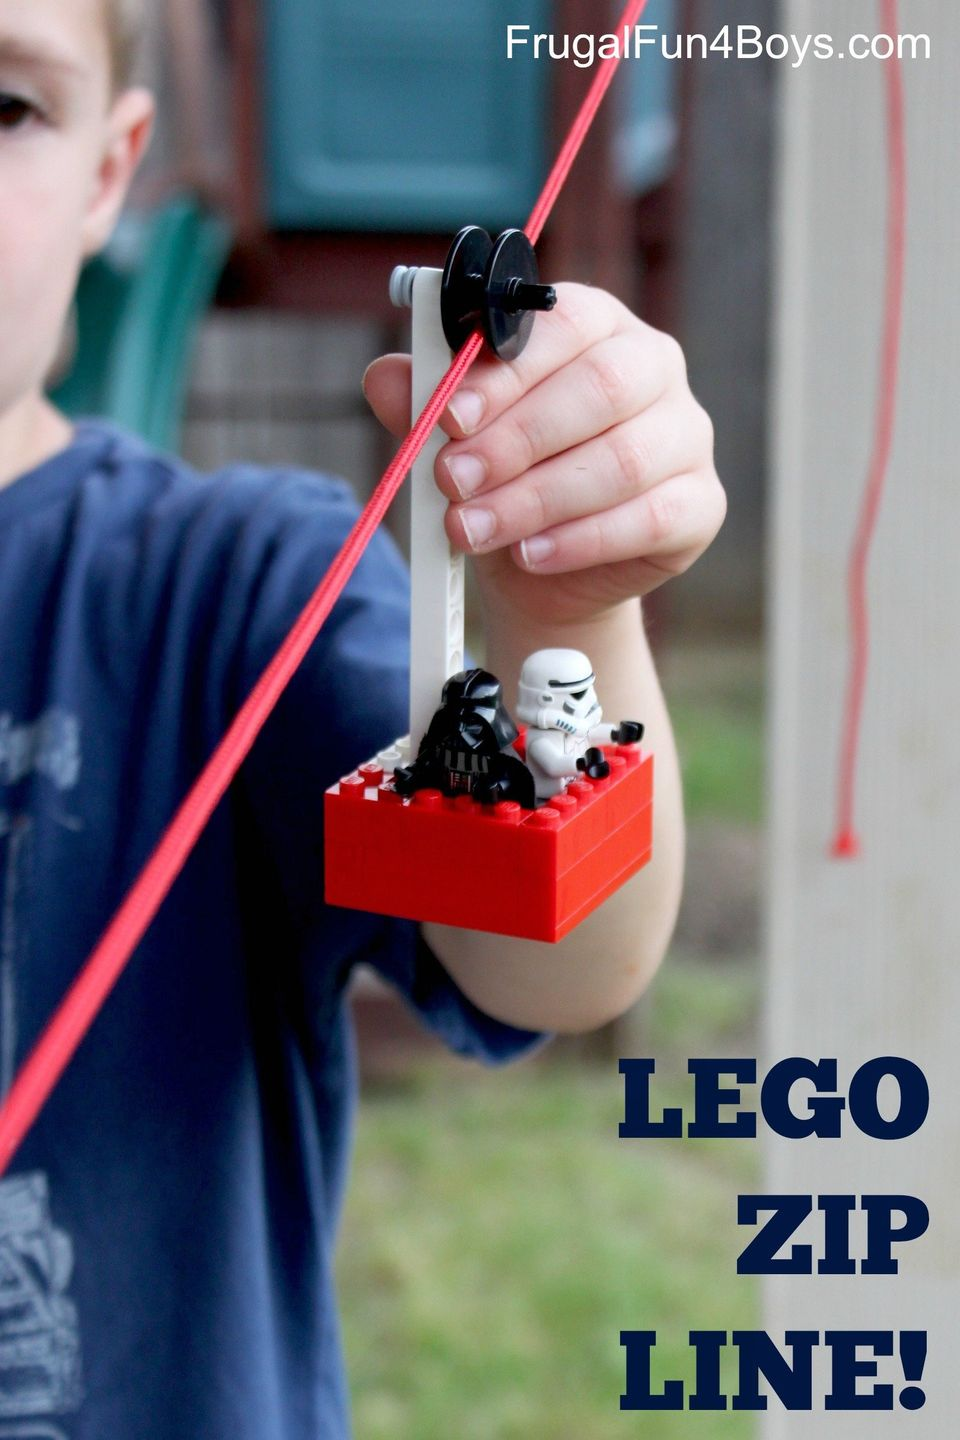 Your kids can send their favourite minifigs for a ride with this clever zipline design. Or perhaps send a snack to the family